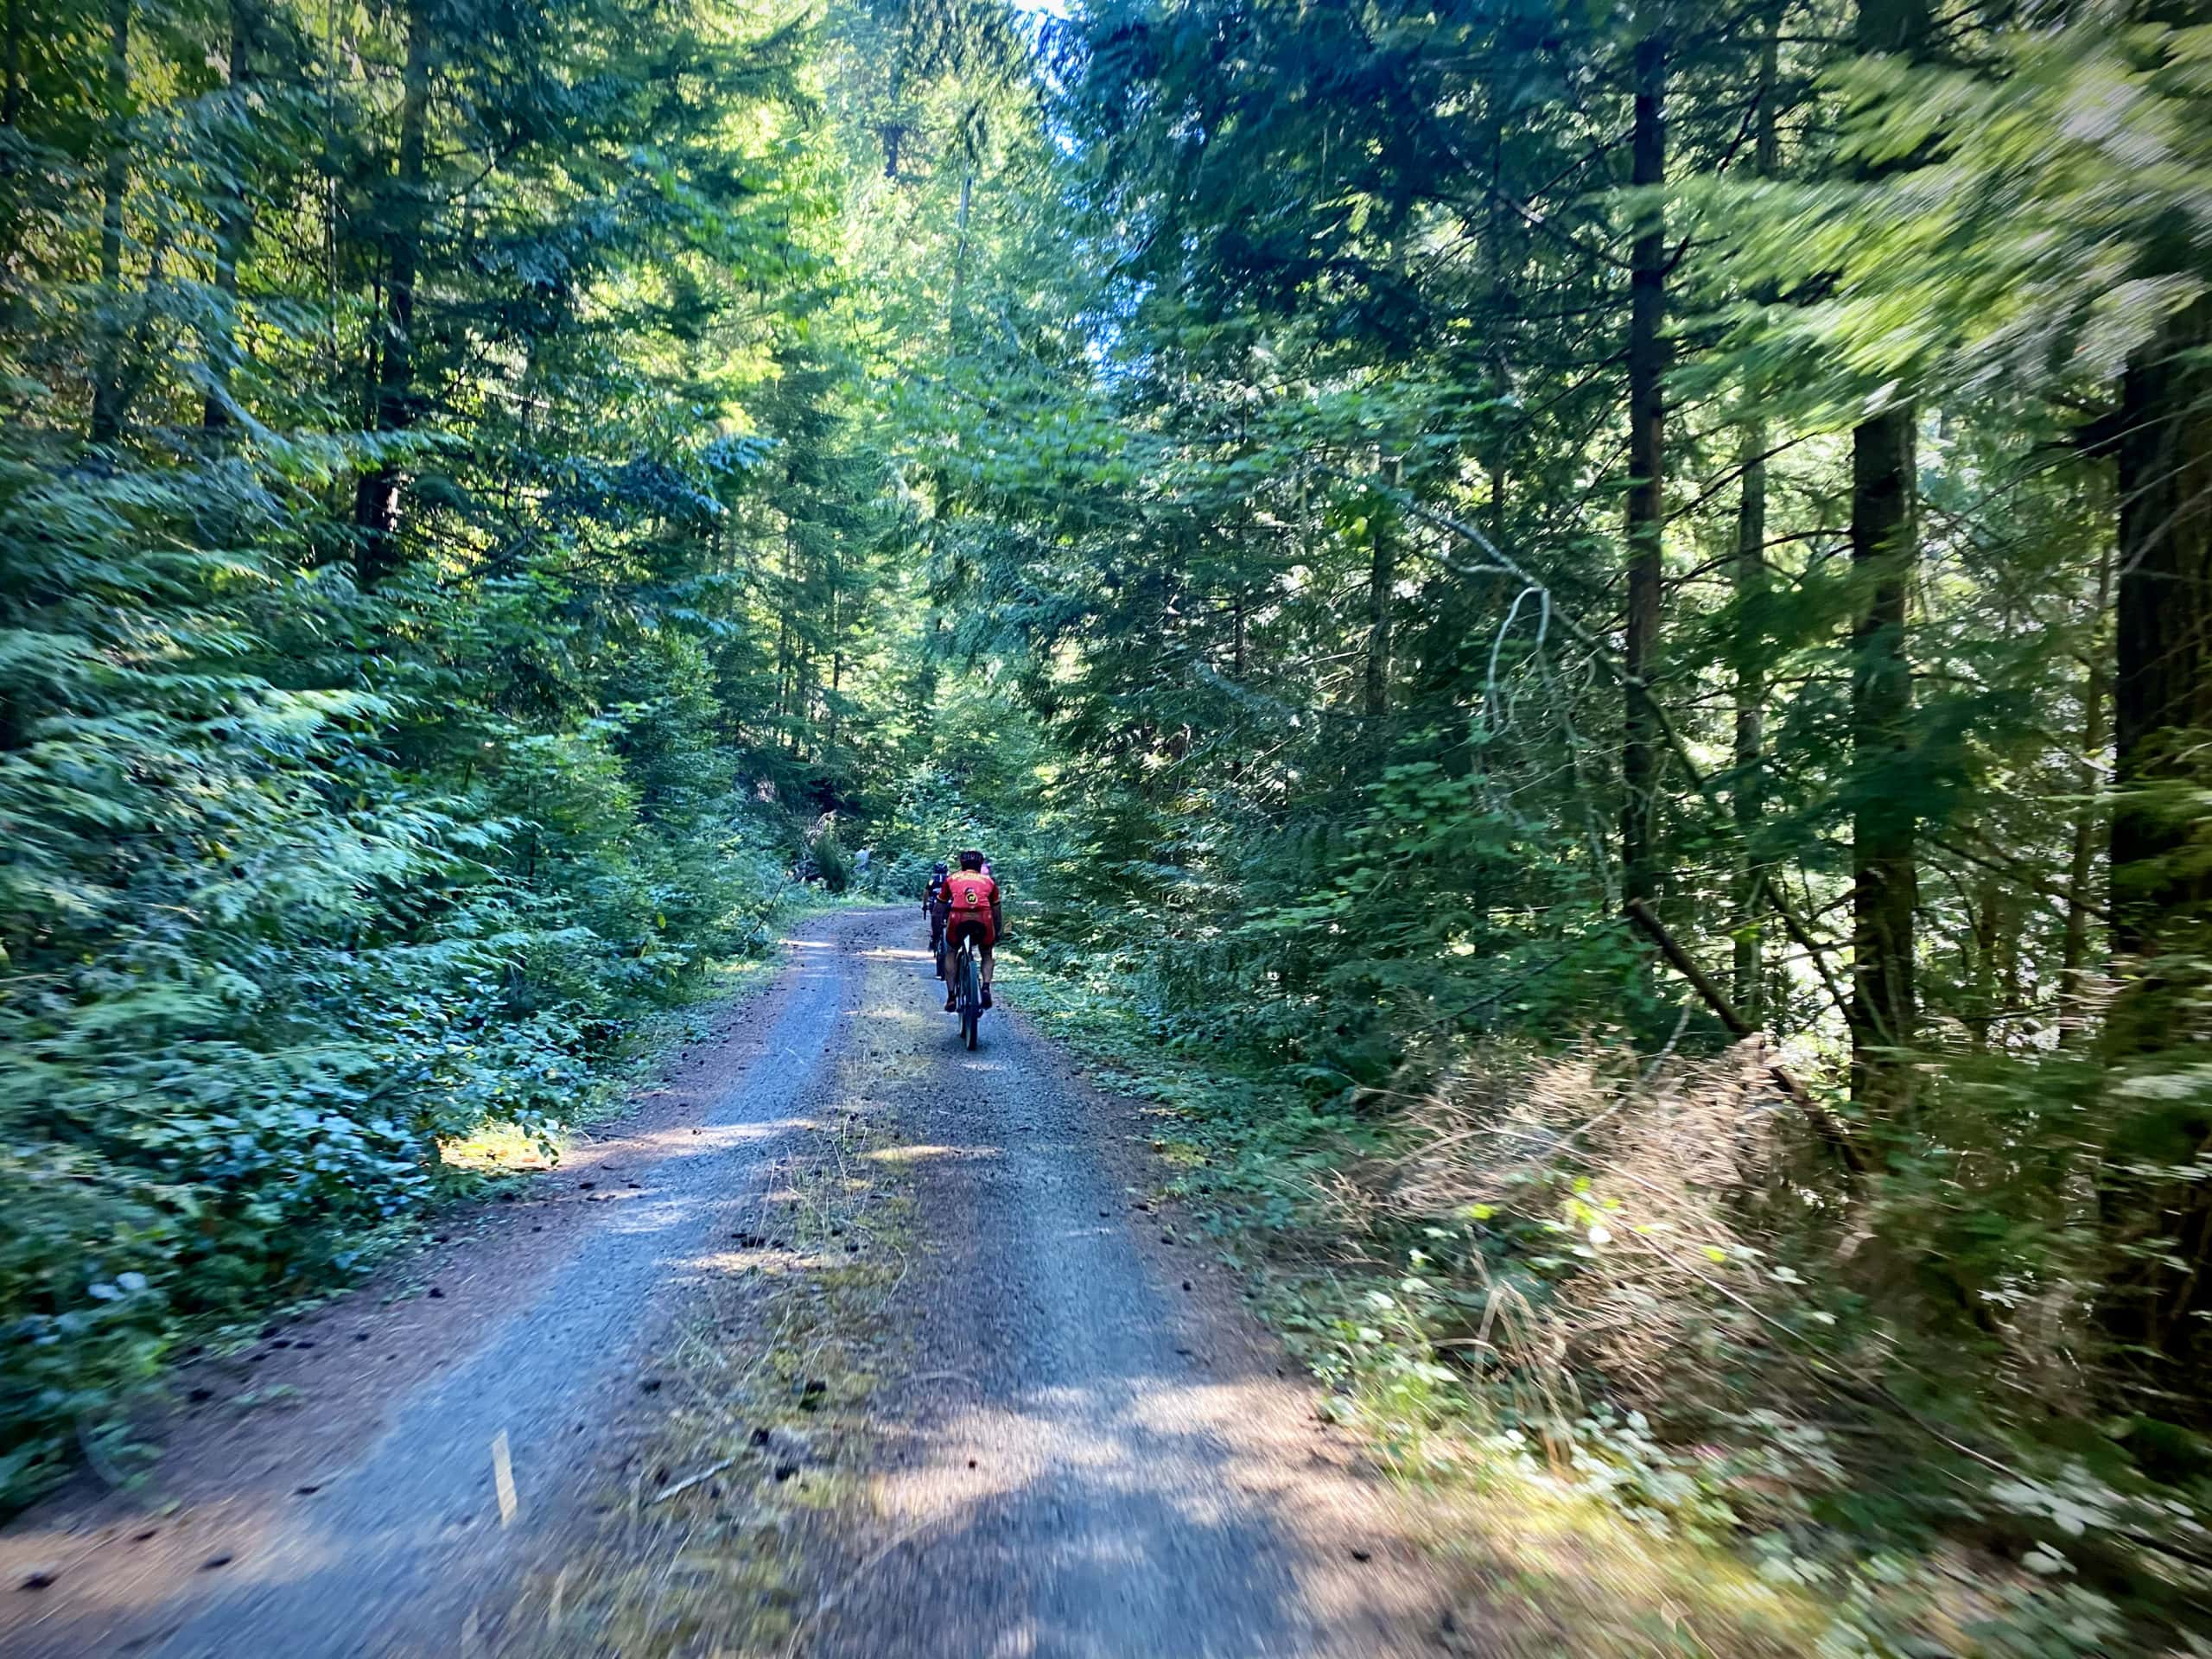 Gravel cyclist on one-laned gravel, forest service road in the Willamette National Forest.